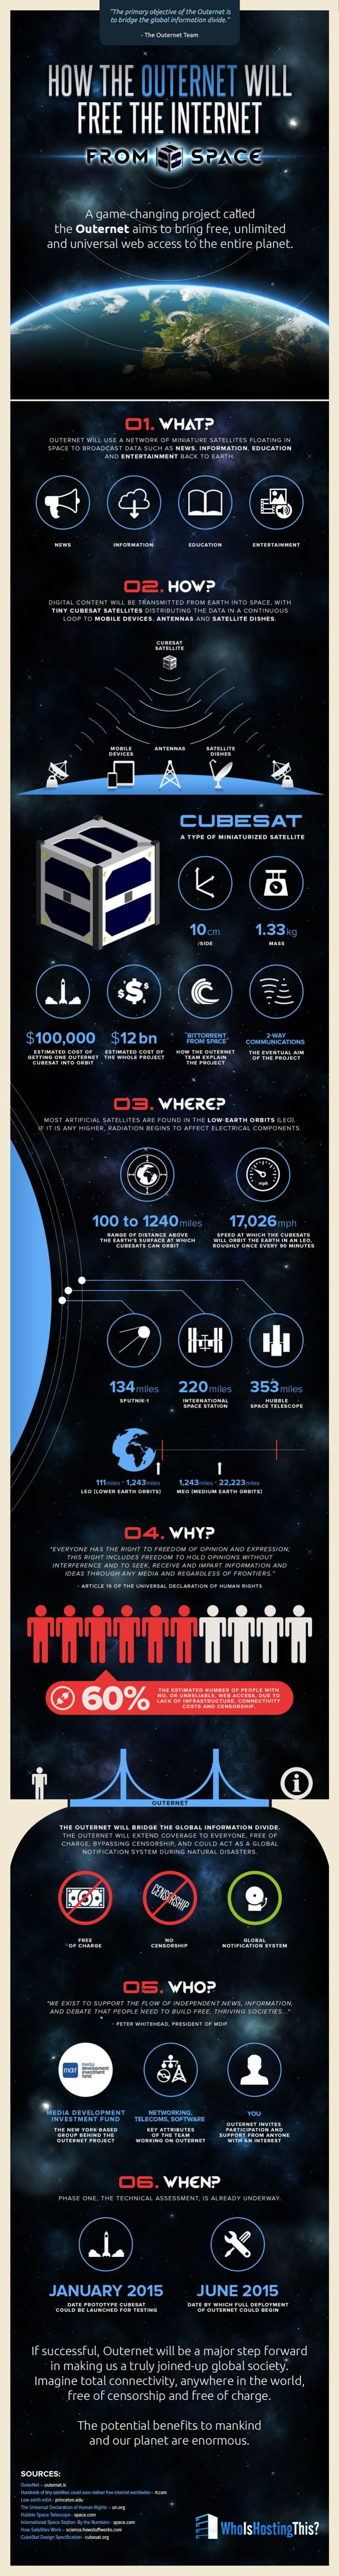 How the Outernet will free the Internet from space #infographic